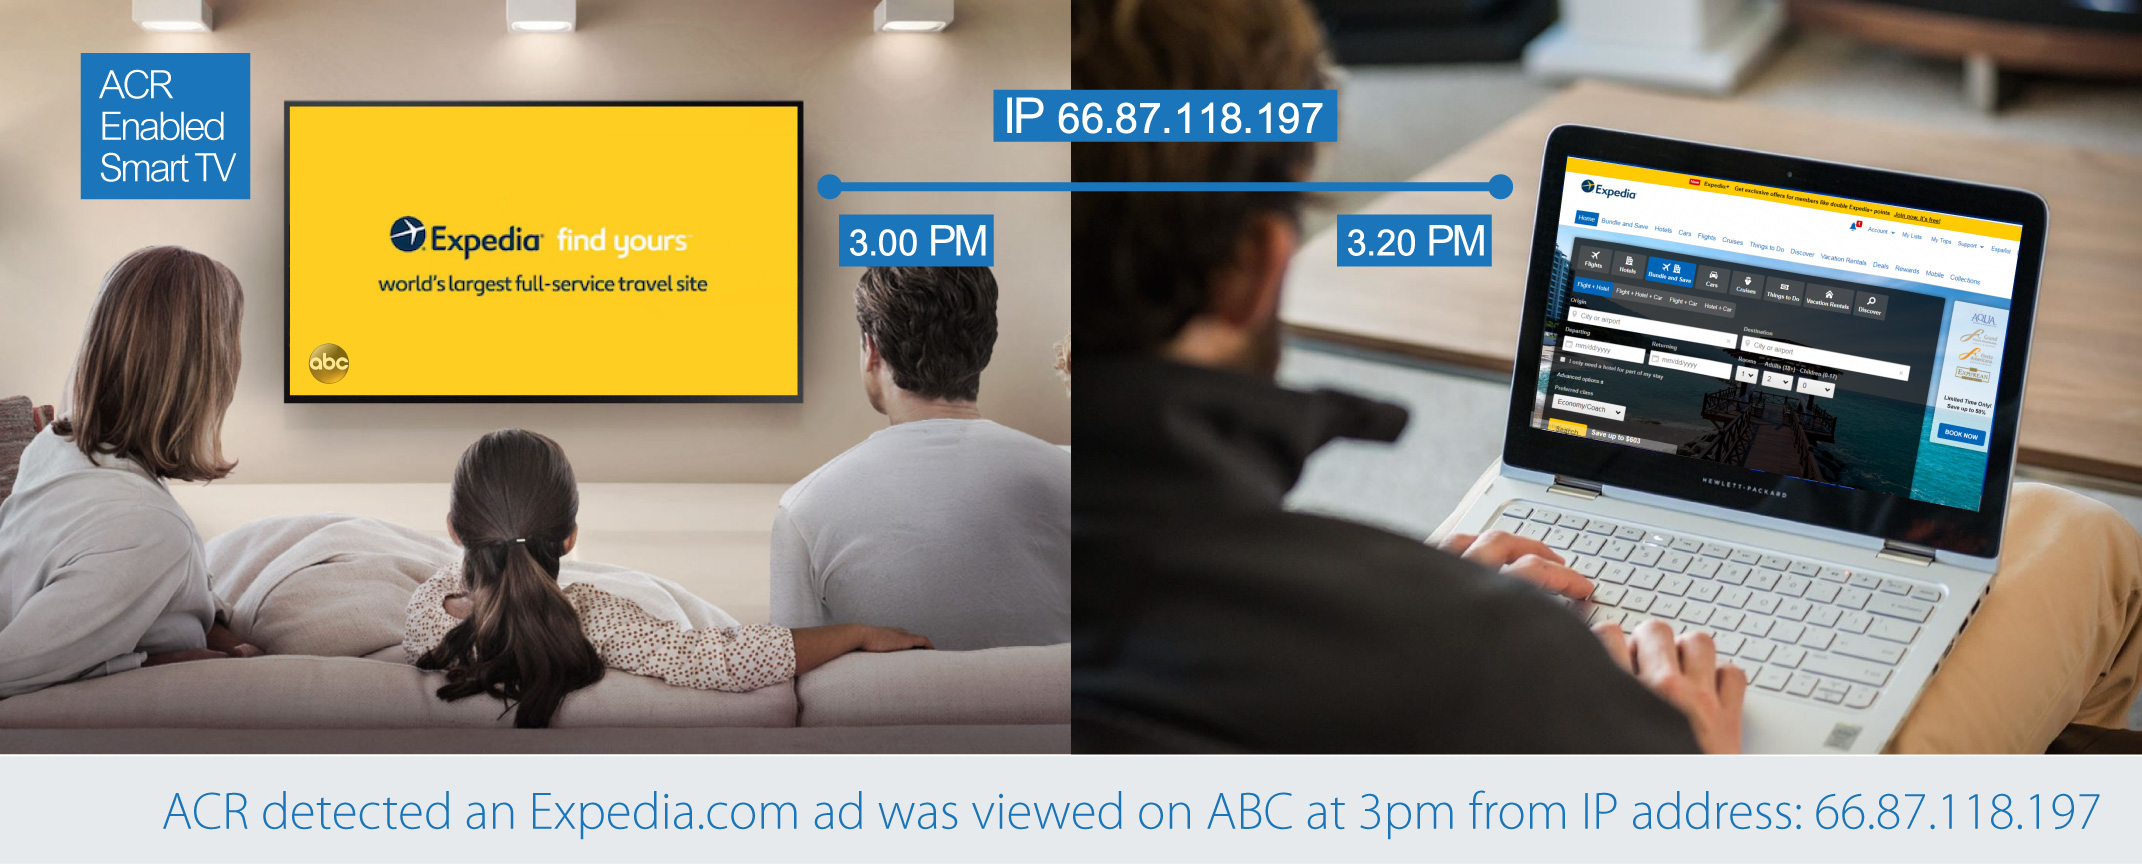 ACR detected an Expedia.com ad was viewed on ABC at 3 pm from IP address: 66.87.118.197